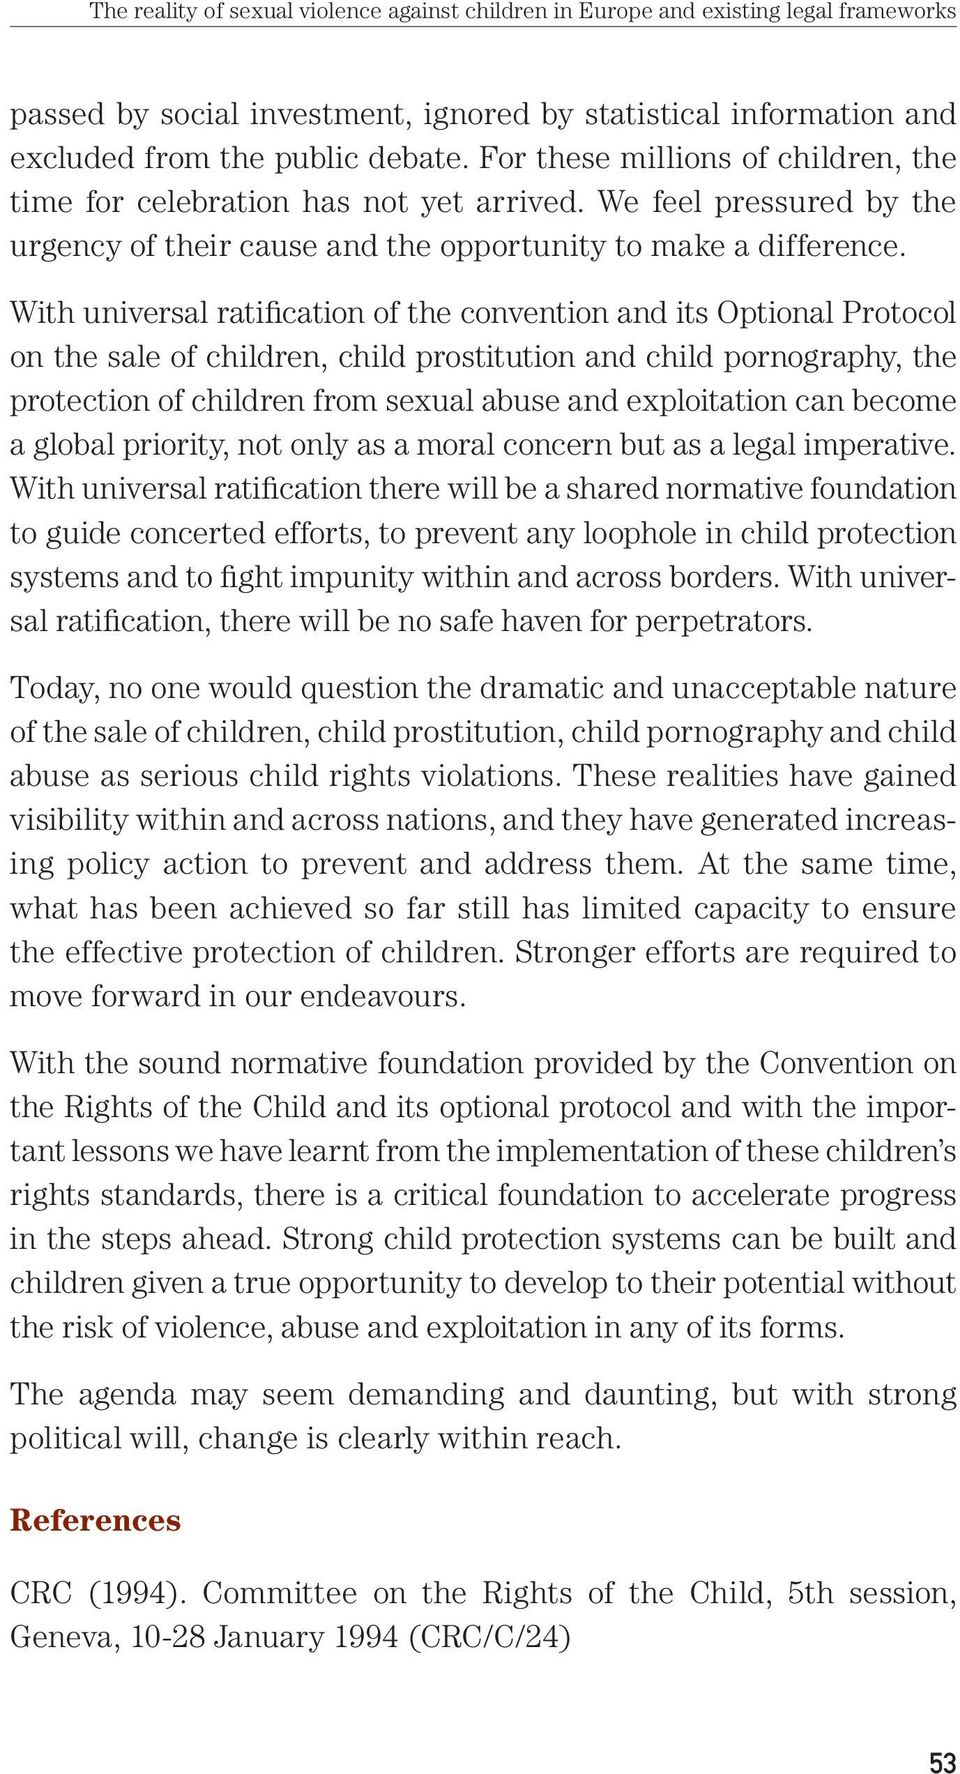 With universal ratification of the convention and its Optional Protocol on the sale of children, child prostitution and child pornography, the protection of children from sexual abuse and